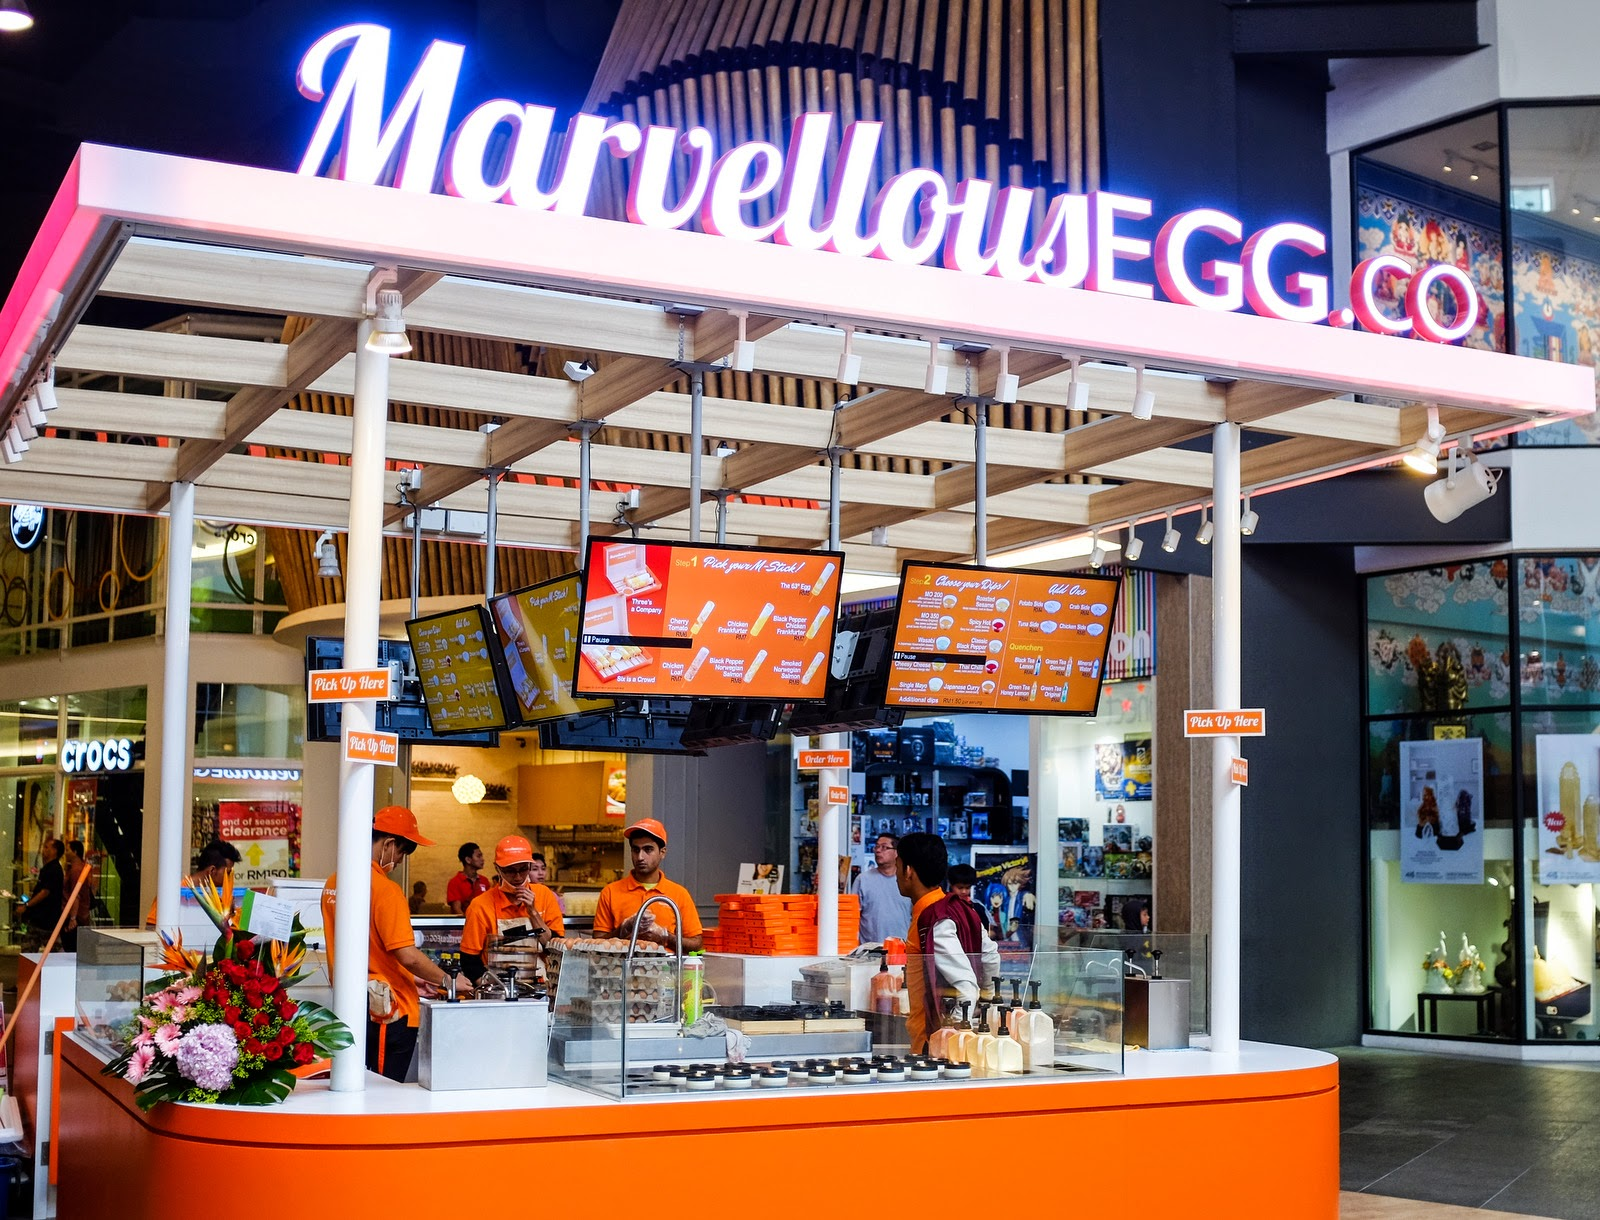 Marvellous Egg Co @ Mid Valley